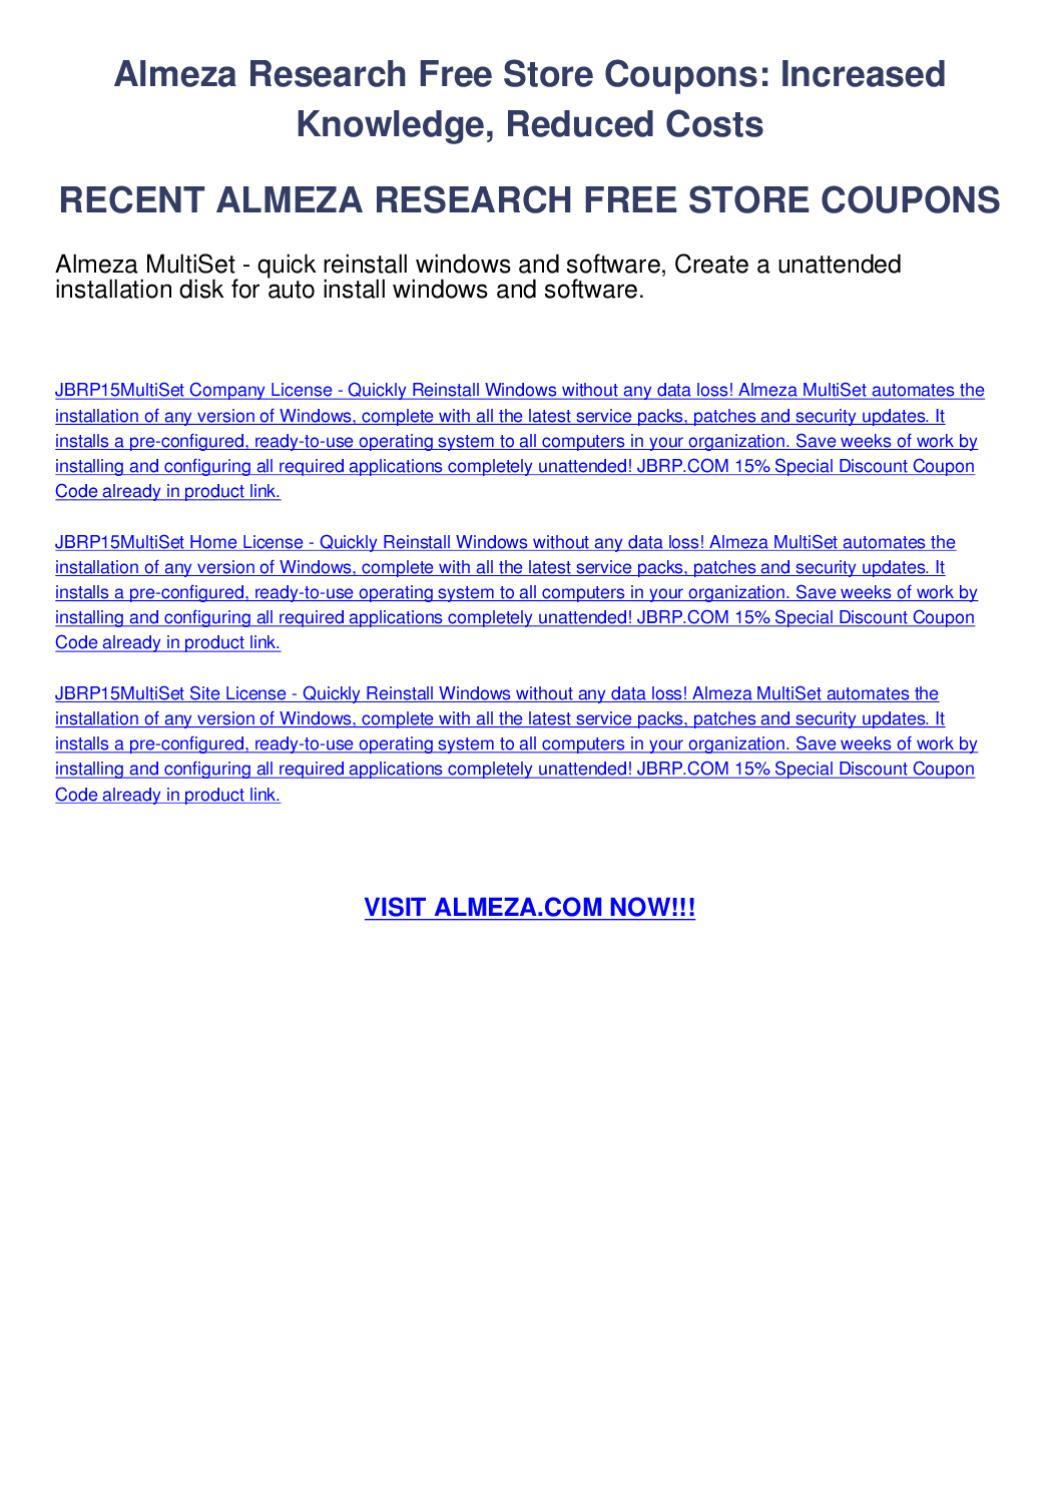 almeza research free store coupons by melis zereng issuu